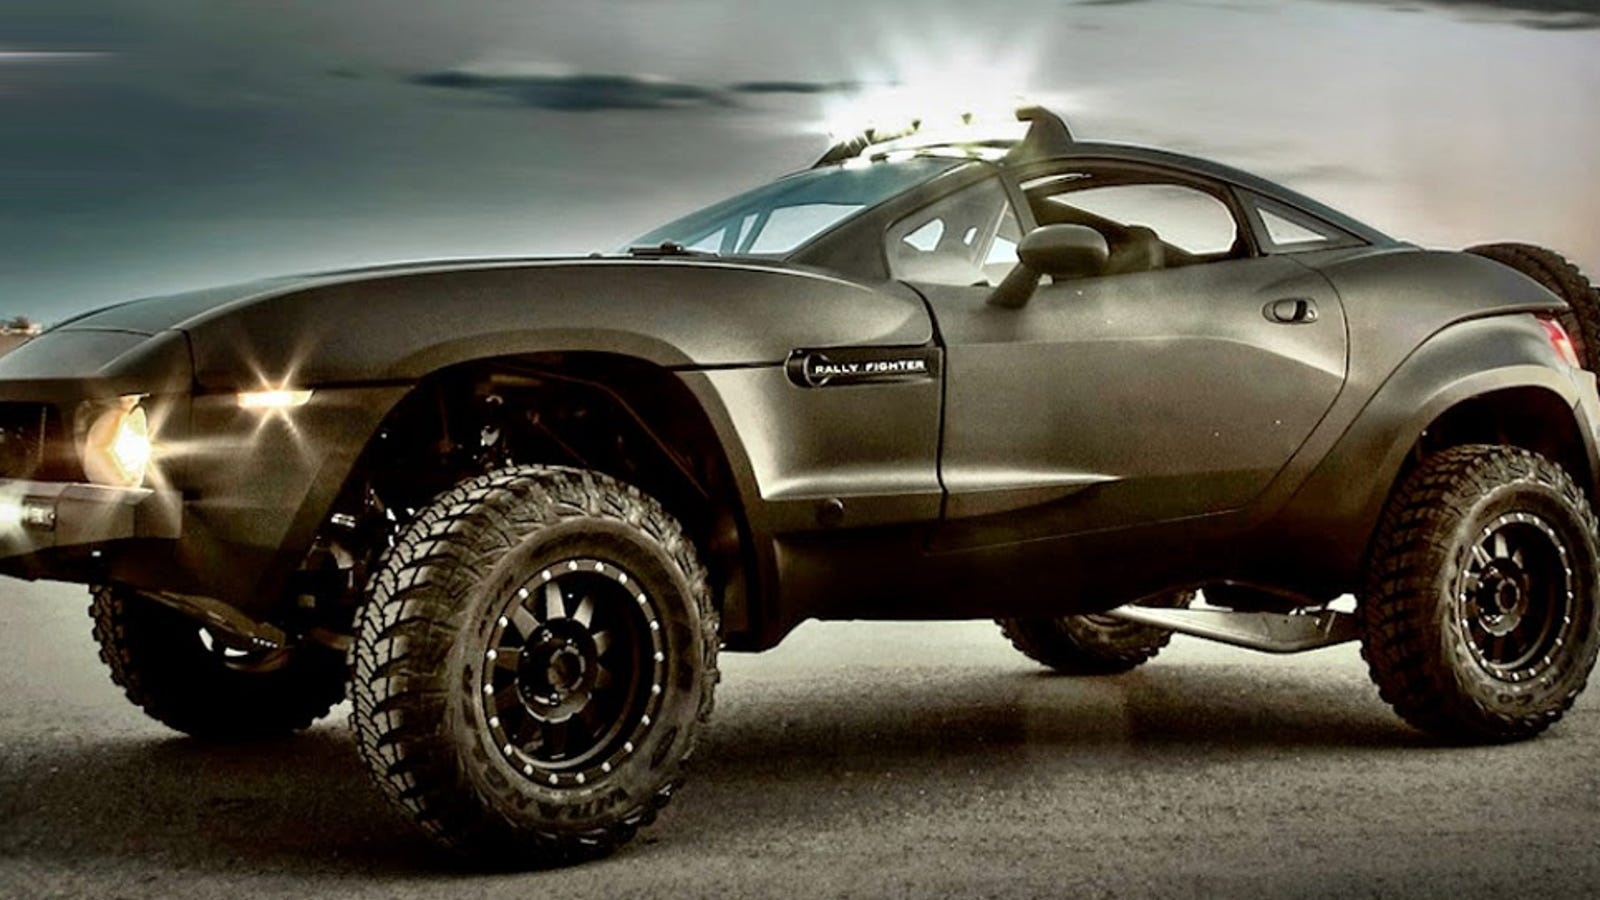 Local Motors Rally Fighter >> How A Small, Open-Source Automaker Got Their Car In ...